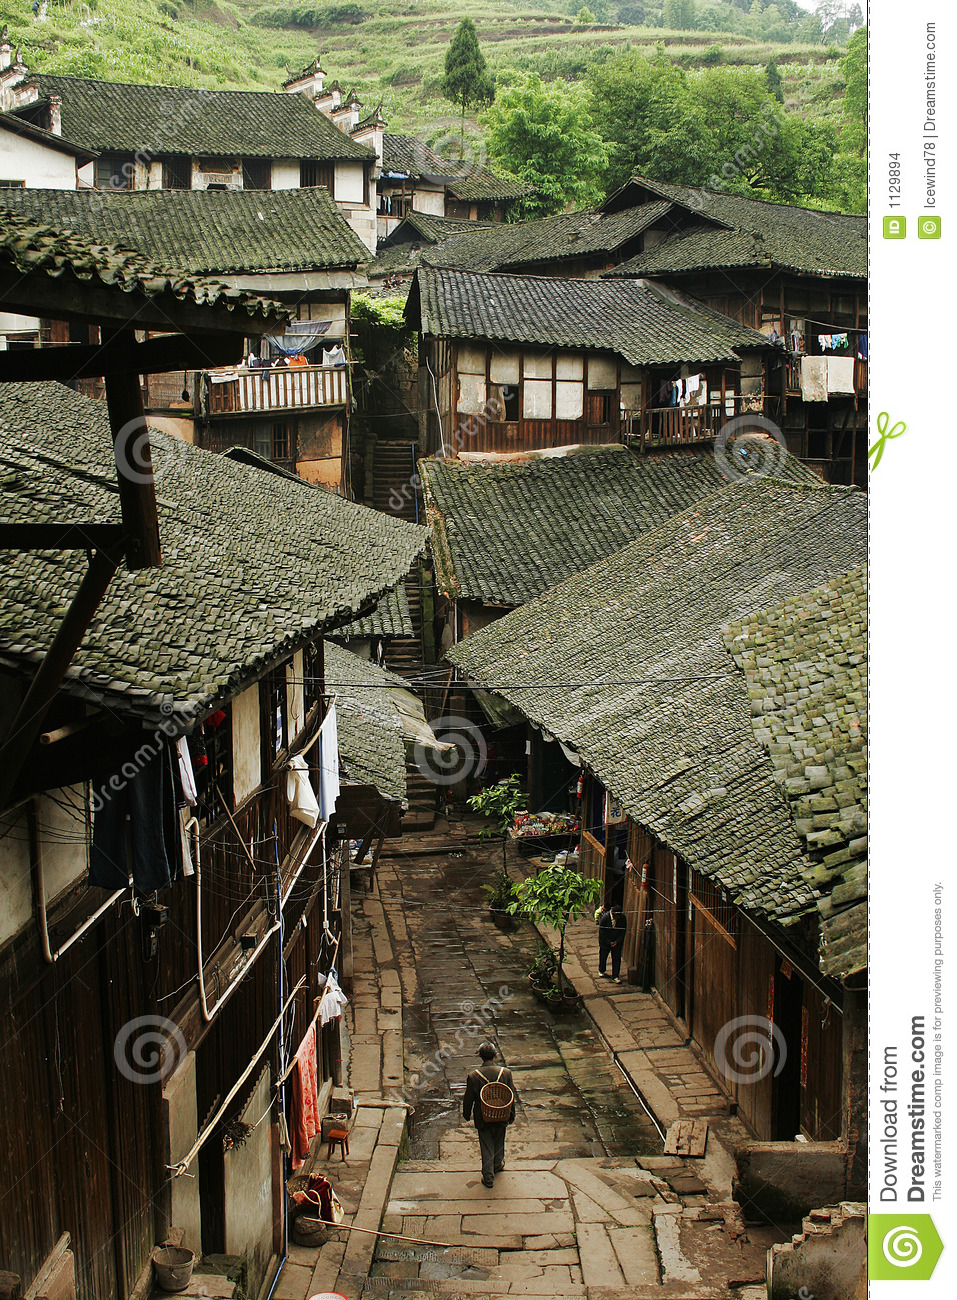 Fubao folk house4